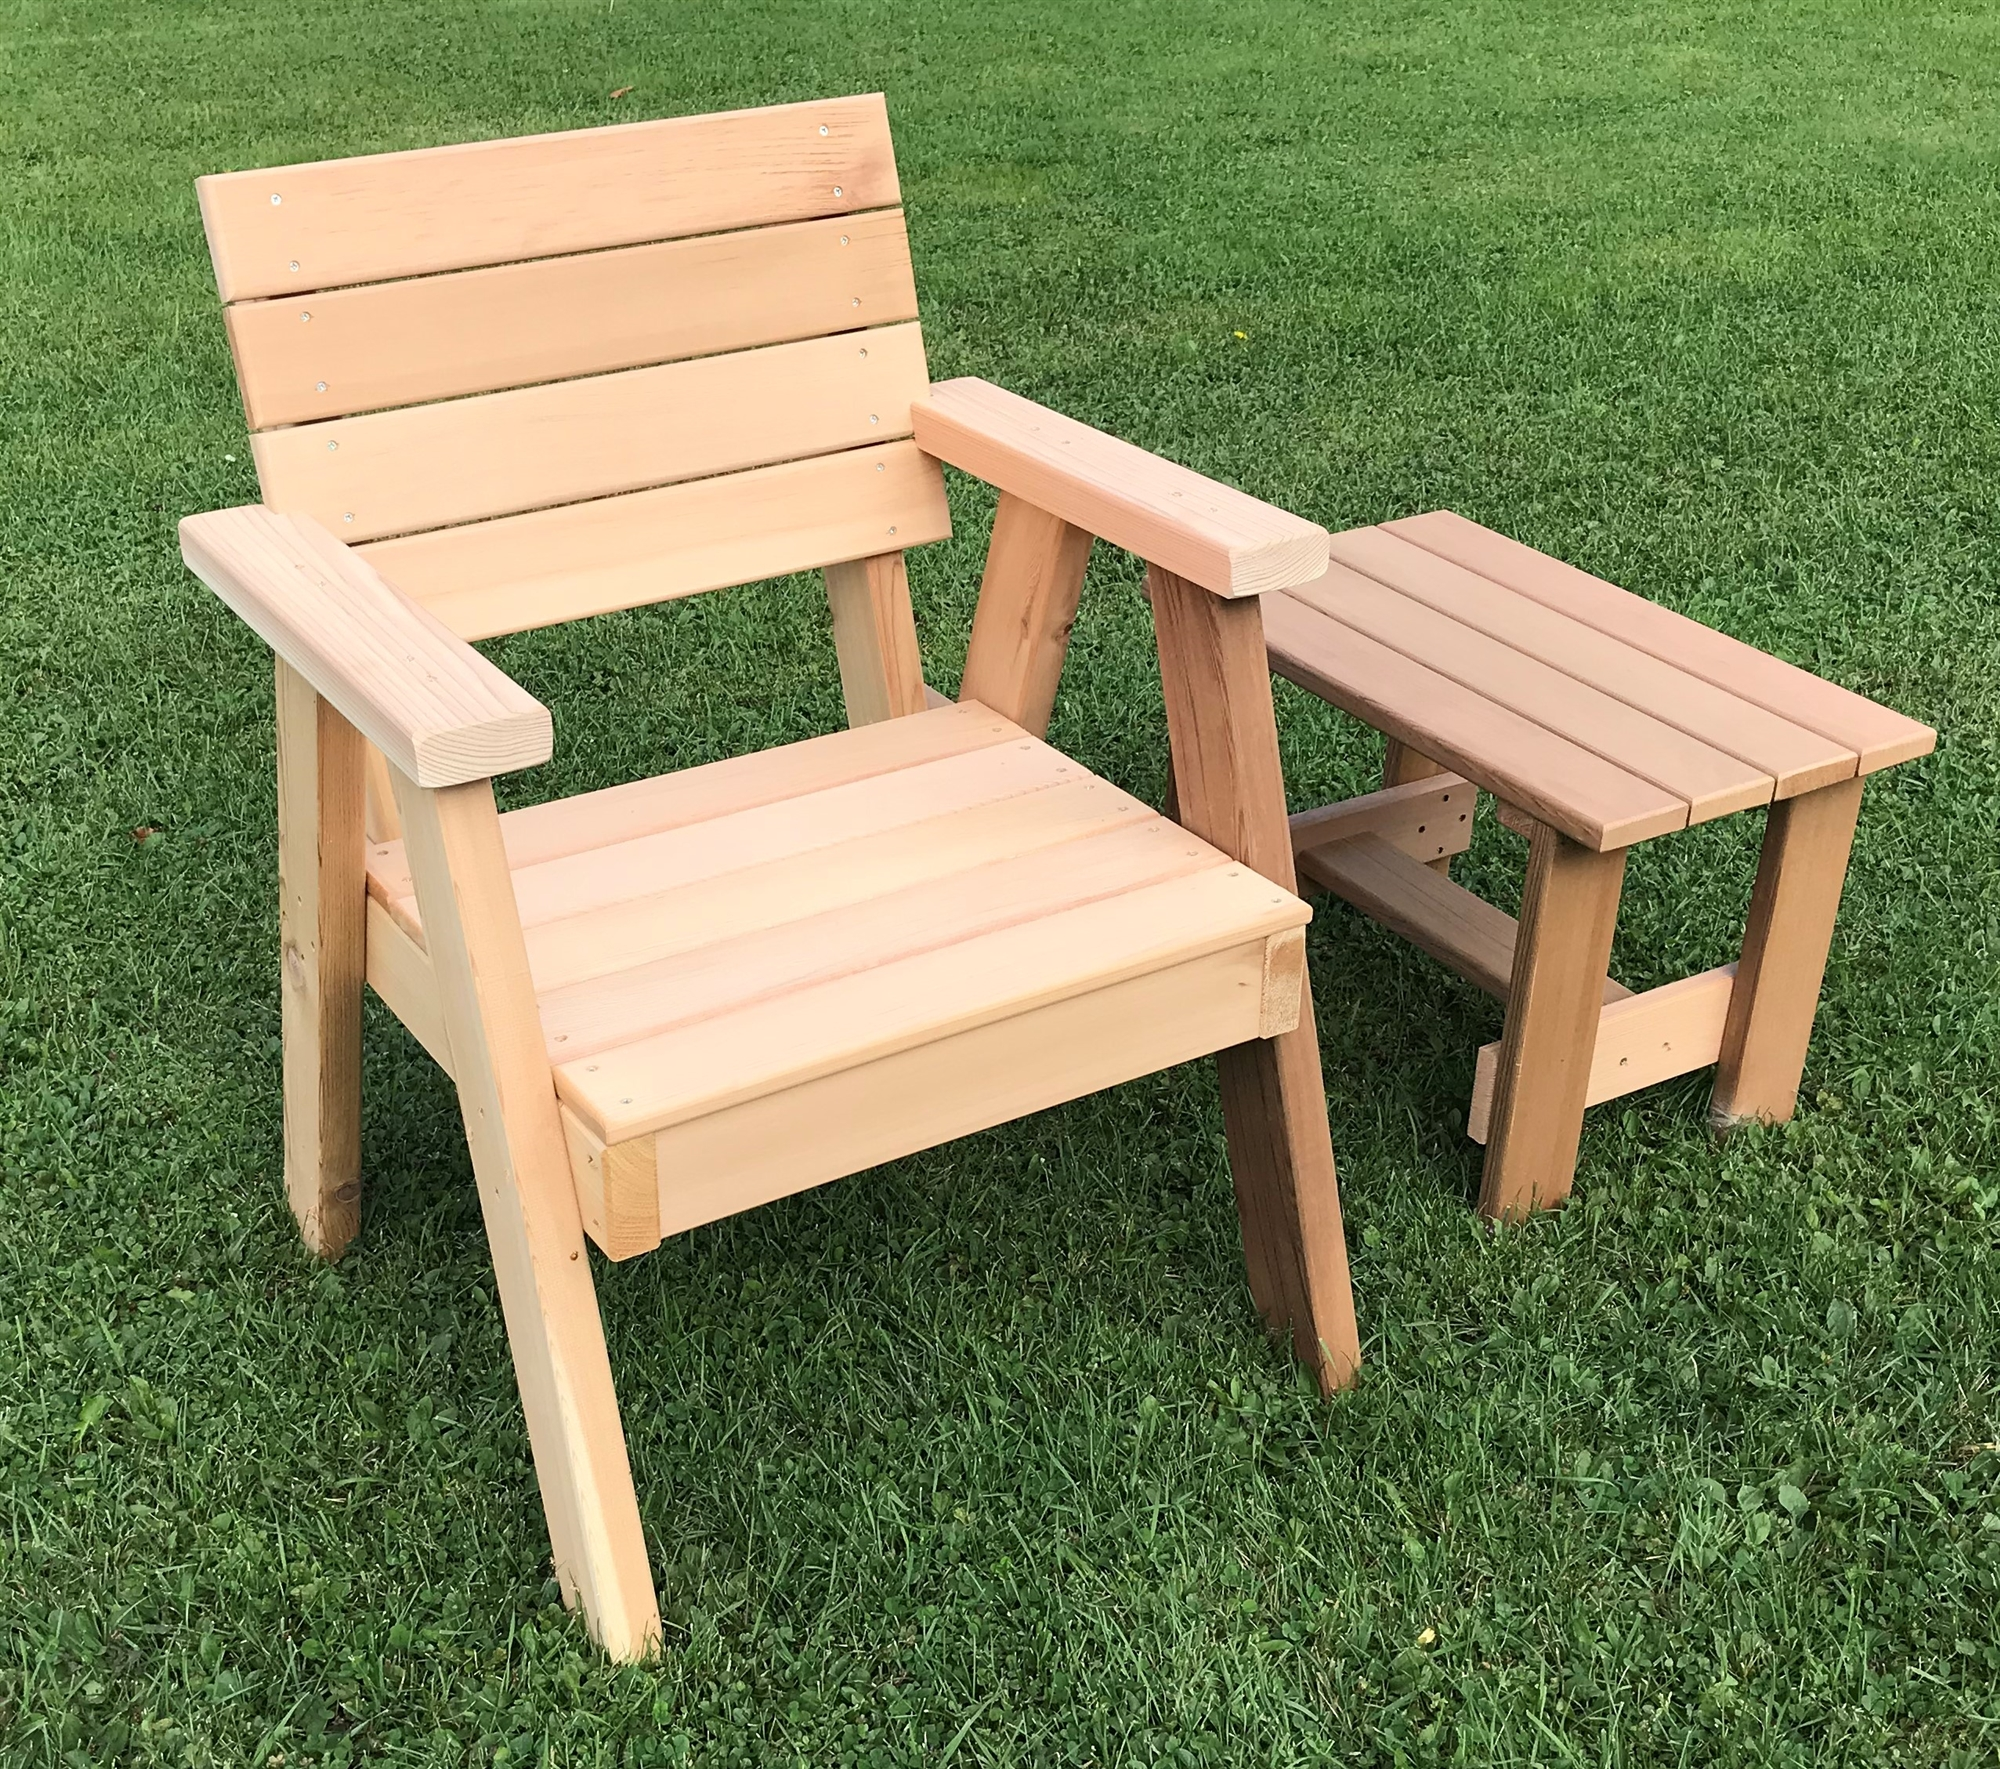 Horizontal Cedar Slats Chair w Arm Rests Hillsfield Collection